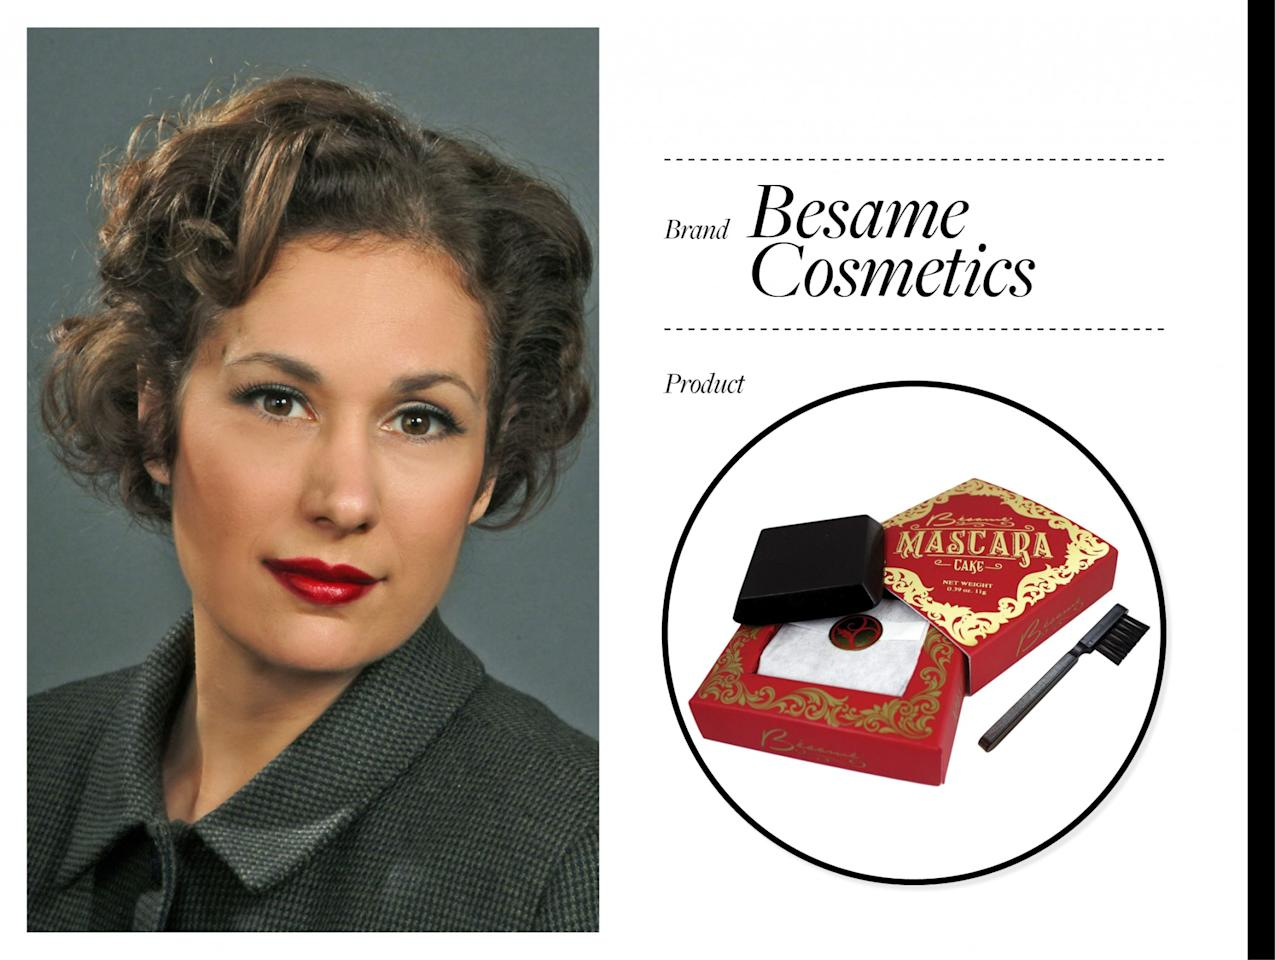 """<p><a rel=""""nofollow"""" href=""""https://besamecosmetics"""">Bésame Cosmetics</a> (which translates to """"kiss me"""") is a vintage-inspired makeup line founded in 2004 by Gabriela Hernandez. Hernandez immigrated to the U.S. from Buenos Aires when she was 12 years old. As an artist, cosmetics historian, author, and designer, Hernandez decided to use her background and skills to re-create old-school makeup products from the 1920s to 1970s but with modern formulation. For Hernandez, it was all about bringing back the glamour to cosmetics. <a rel=""""nofollow"""" href=""""https://www.instagram.com/besamecosmetics/?hl=en"""">Bésame</a> is known for its <a rel=""""nofollow"""" href=""""https://besamecosmetics.com/collections/lipstick"""">Classic Color Lipsticks</a> ($22), which replicate the original shades from the past. As for the packaging of the lipsticks, it's based on Hernandez's grandmother's 1940s lipstick bullet. One other standout product from the collection is the <a rel=""""nofollow"""" href=""""https://besamecosmetics.com/collections/eyes/products/black-cake-mascara"""">Cake Mascara</a> ($25). It's not your ordinary mascara tube — this one is a solid formulation similar to the cake mascaras used in the 1920s. The solid isn't just for your lashes; it can also be used for your brows and as eyeliner by just activating it with water. Shop the brand at <a rel=""""nofollow"""" href=""""https://besamecosmetics"""">Besamecosmetics.com</a> or at <a rel=""""nofollow"""" href=""""http://Sephora.com"""">Sephora.com</a>. (Photo: Bésame Cosmetics) </p>"""